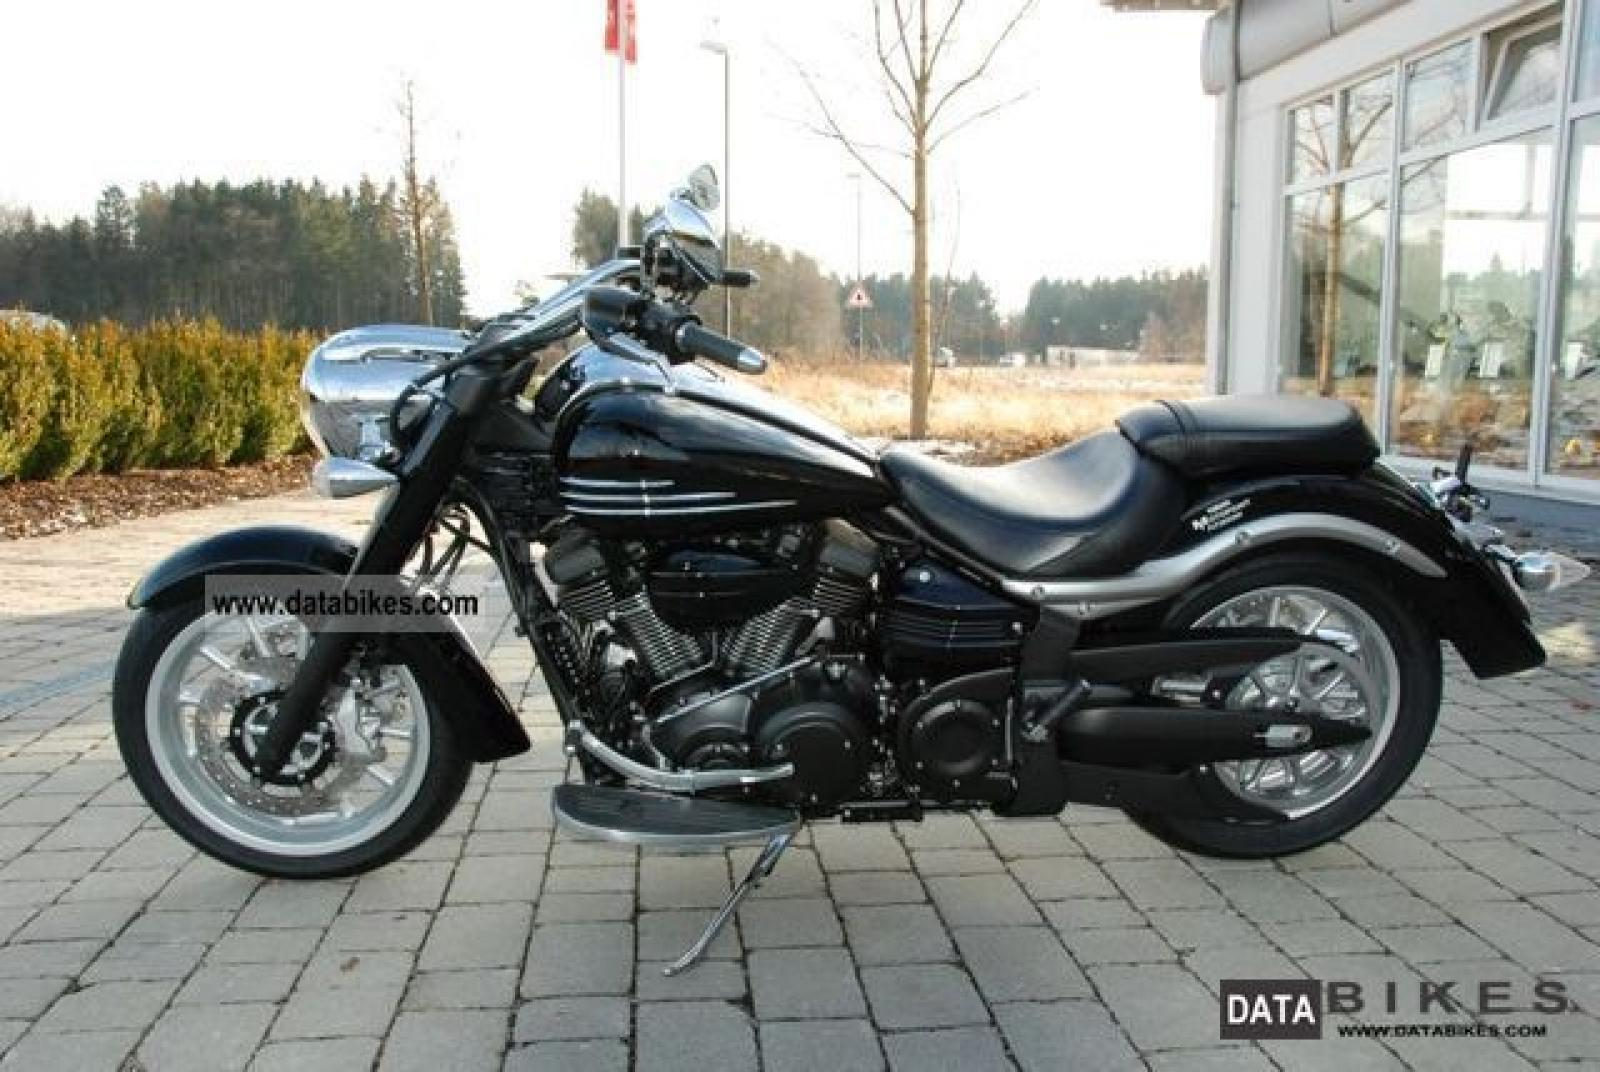 2011 Yamaha XV1900A Midnight Star #3